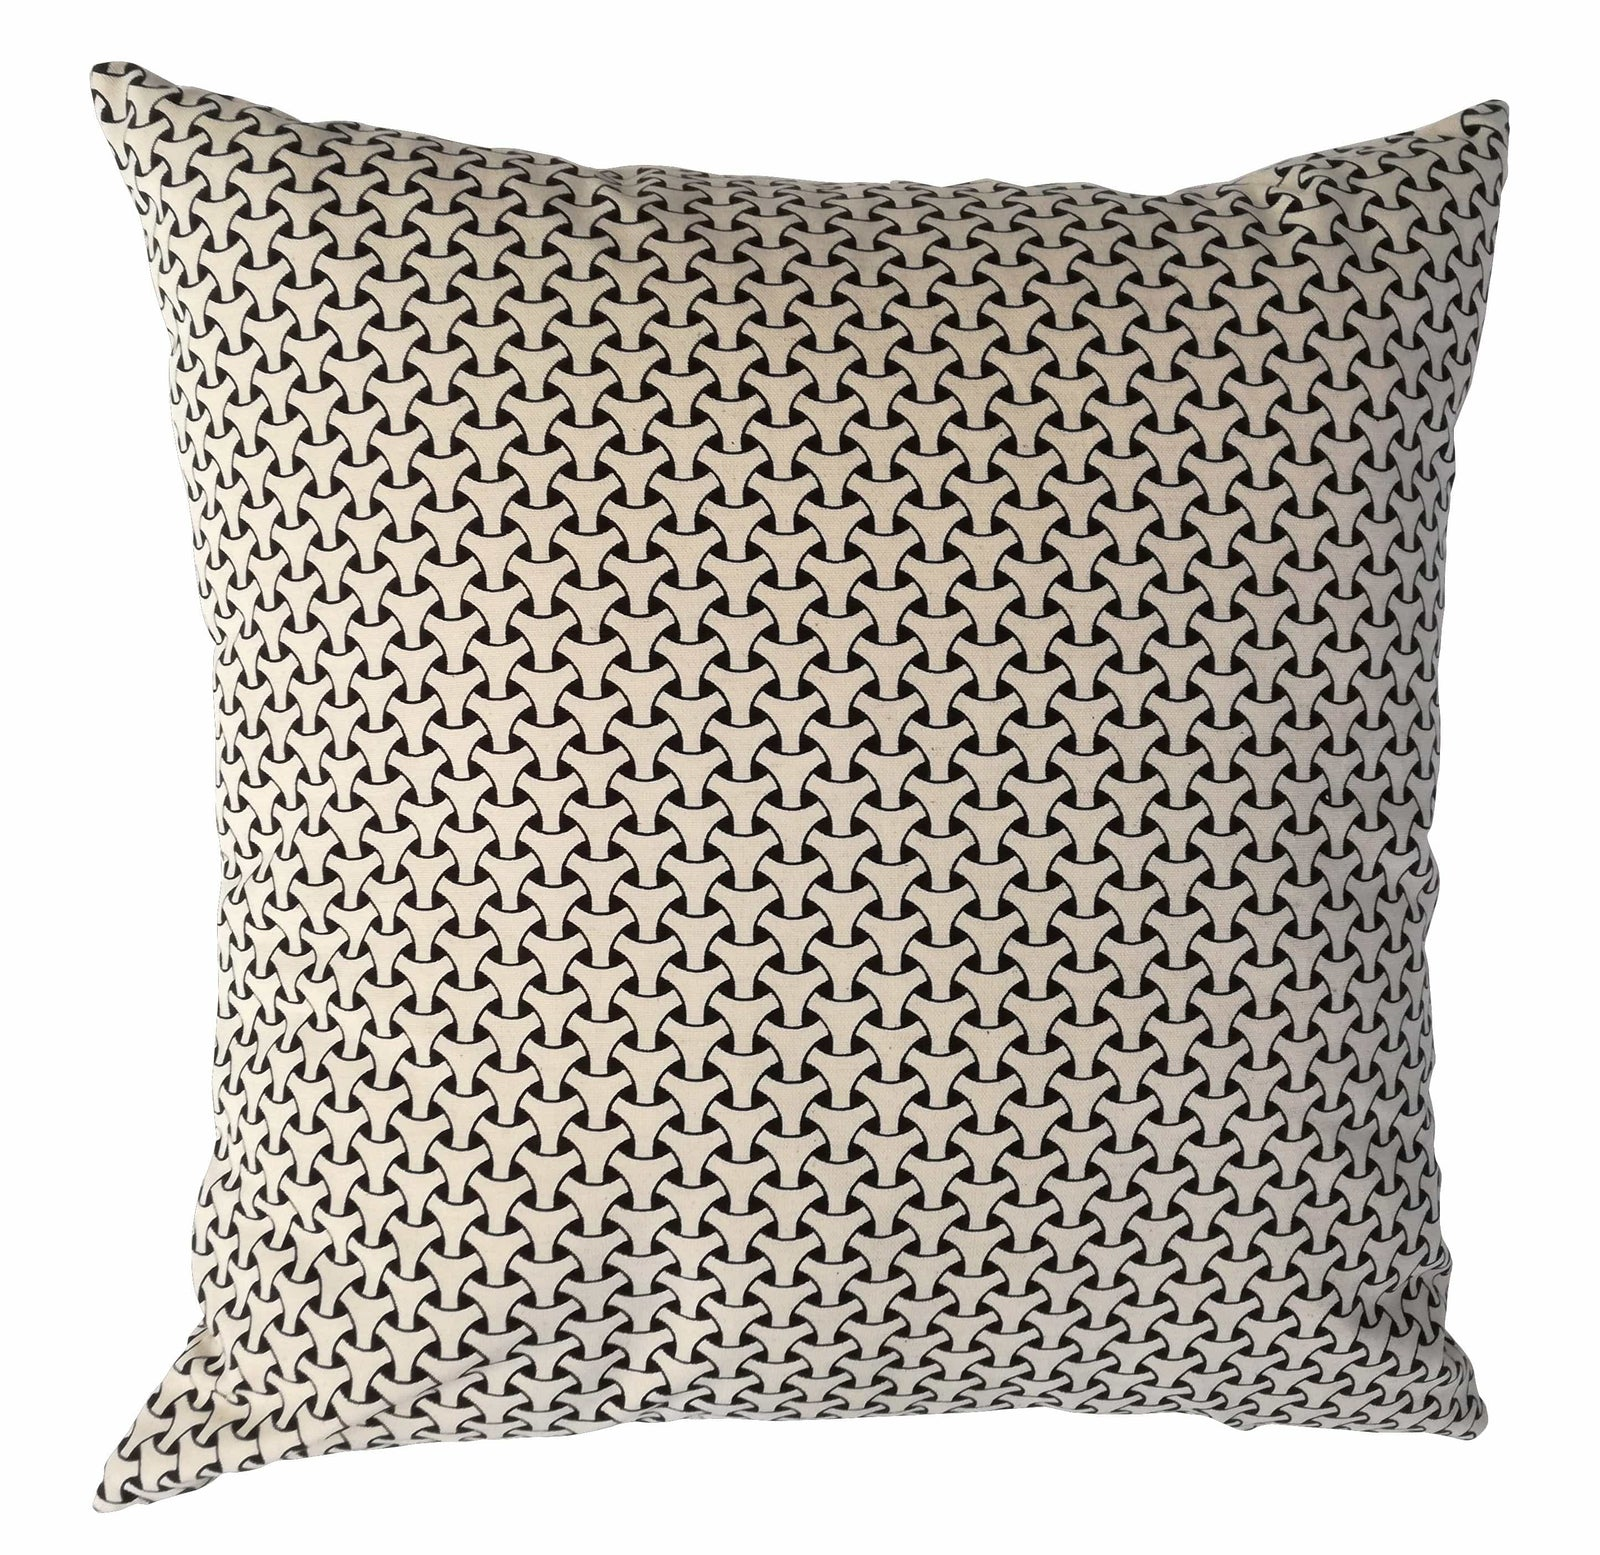 Dogon Weave Black Cushion Cover